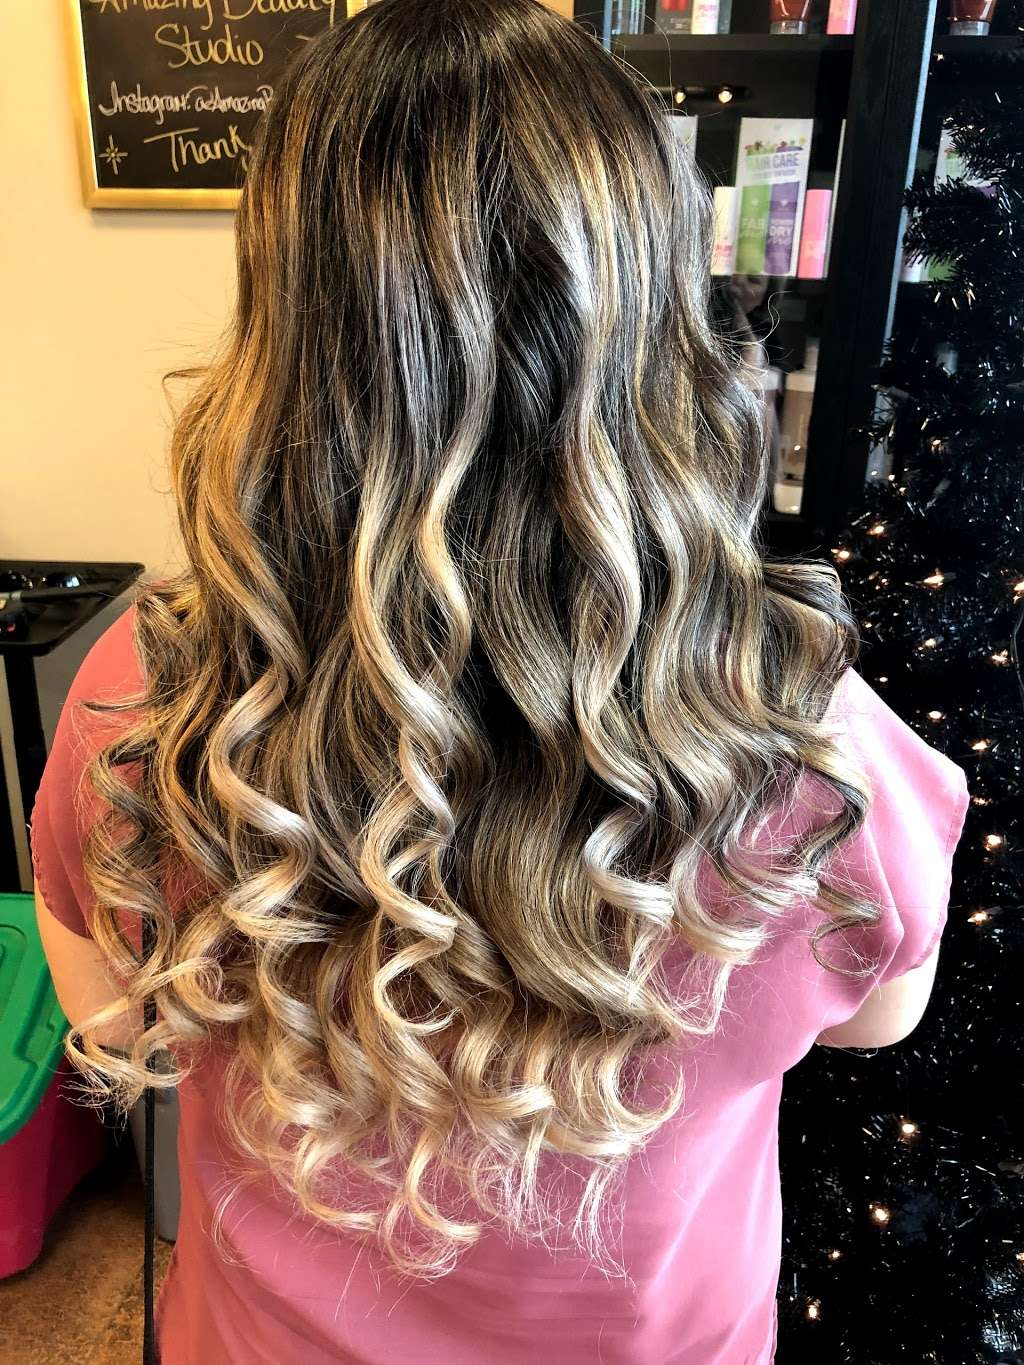 Amazing Beauty Studio - hair care  | Photo 7 of 10 | Address: 5231 Burke Rd #700, Pasadena, TX 77504, USA | Phone: (281) 272-6907